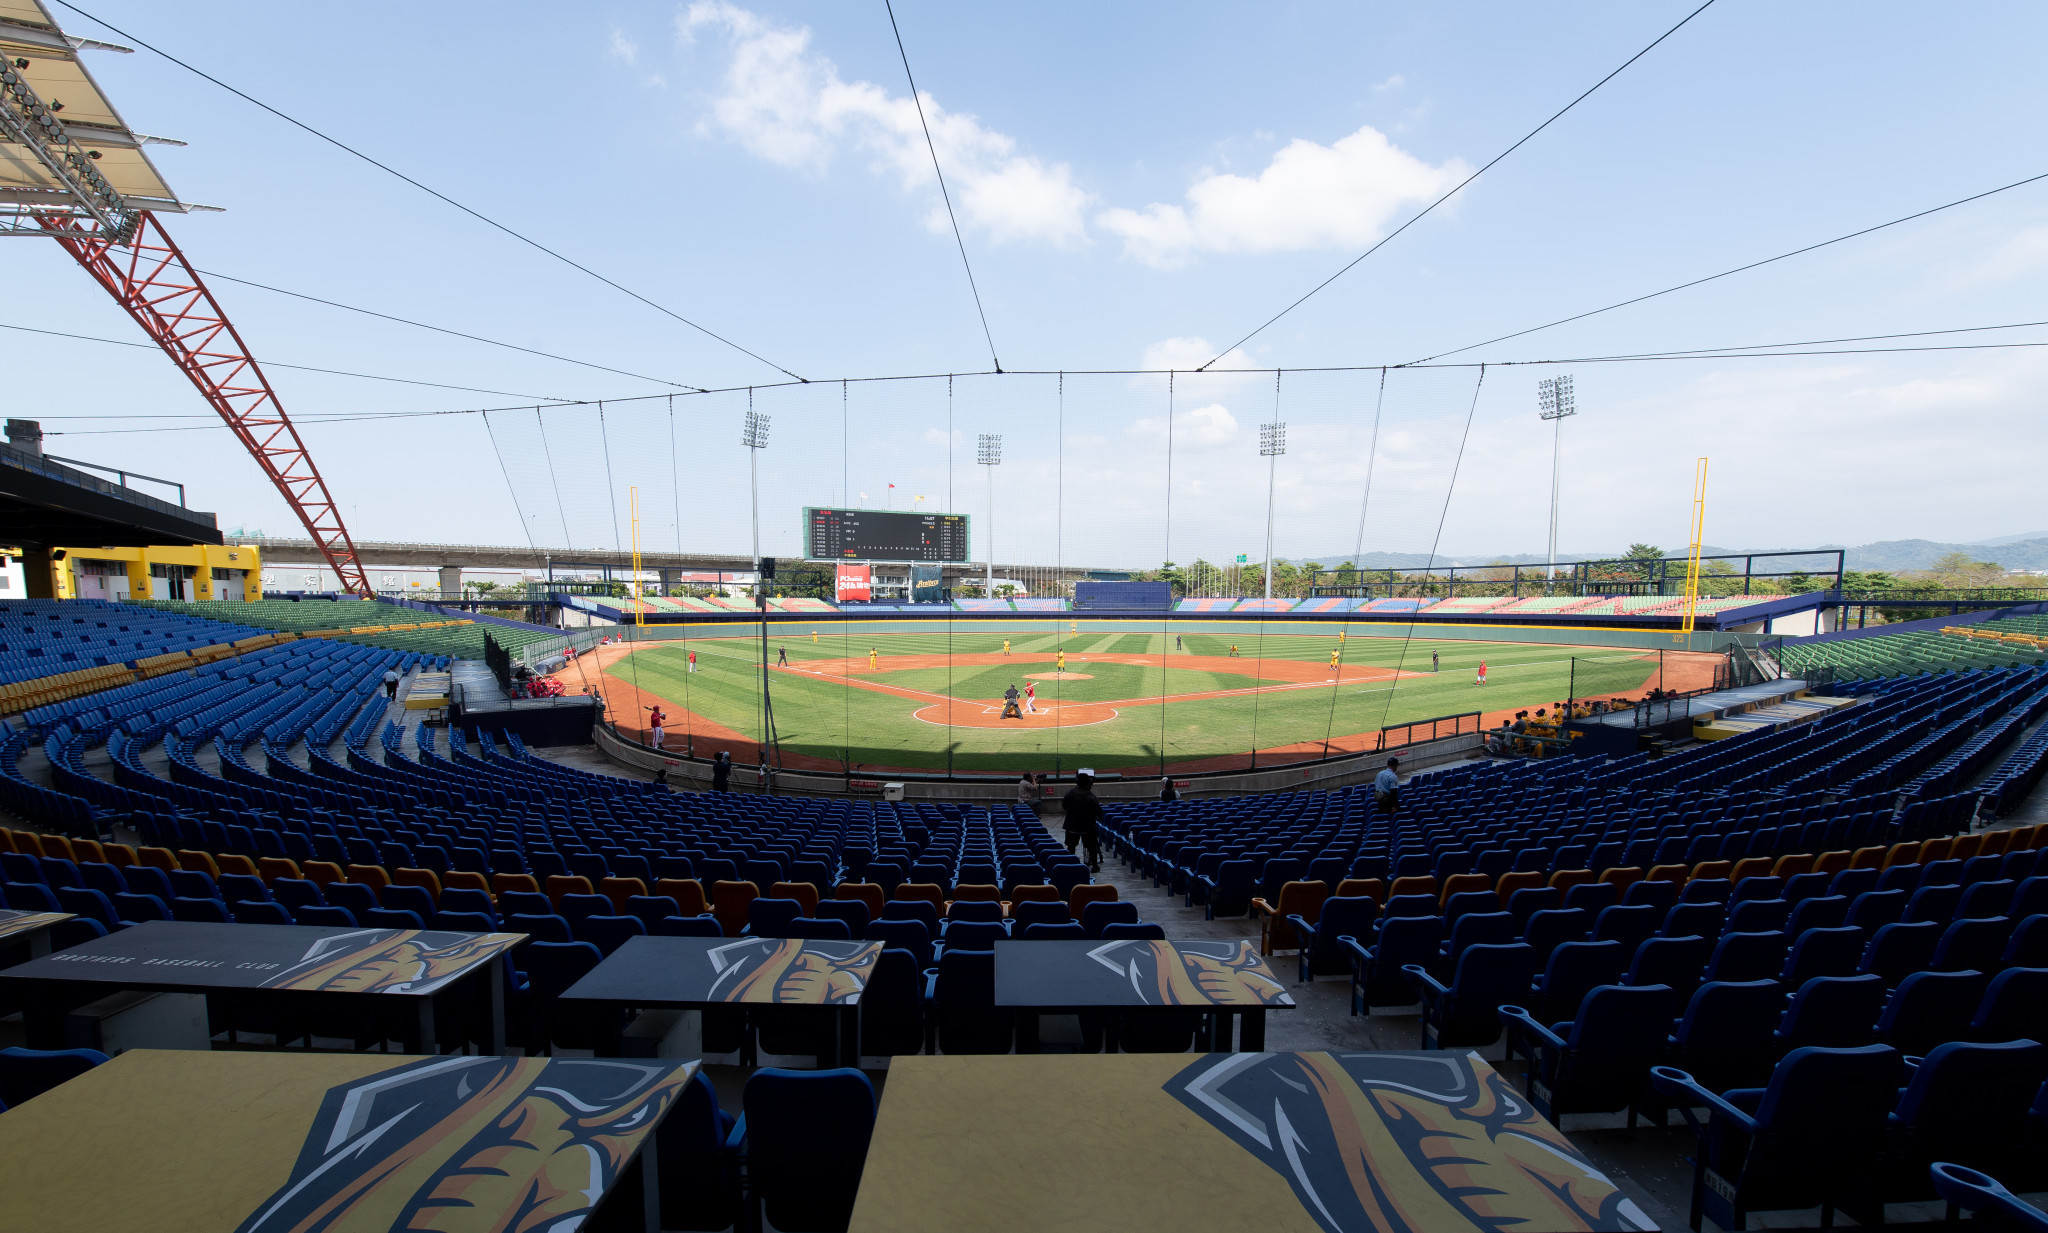 Final baseball qualifier for Tokyo 2020 shifted from Taiwan to Mexico